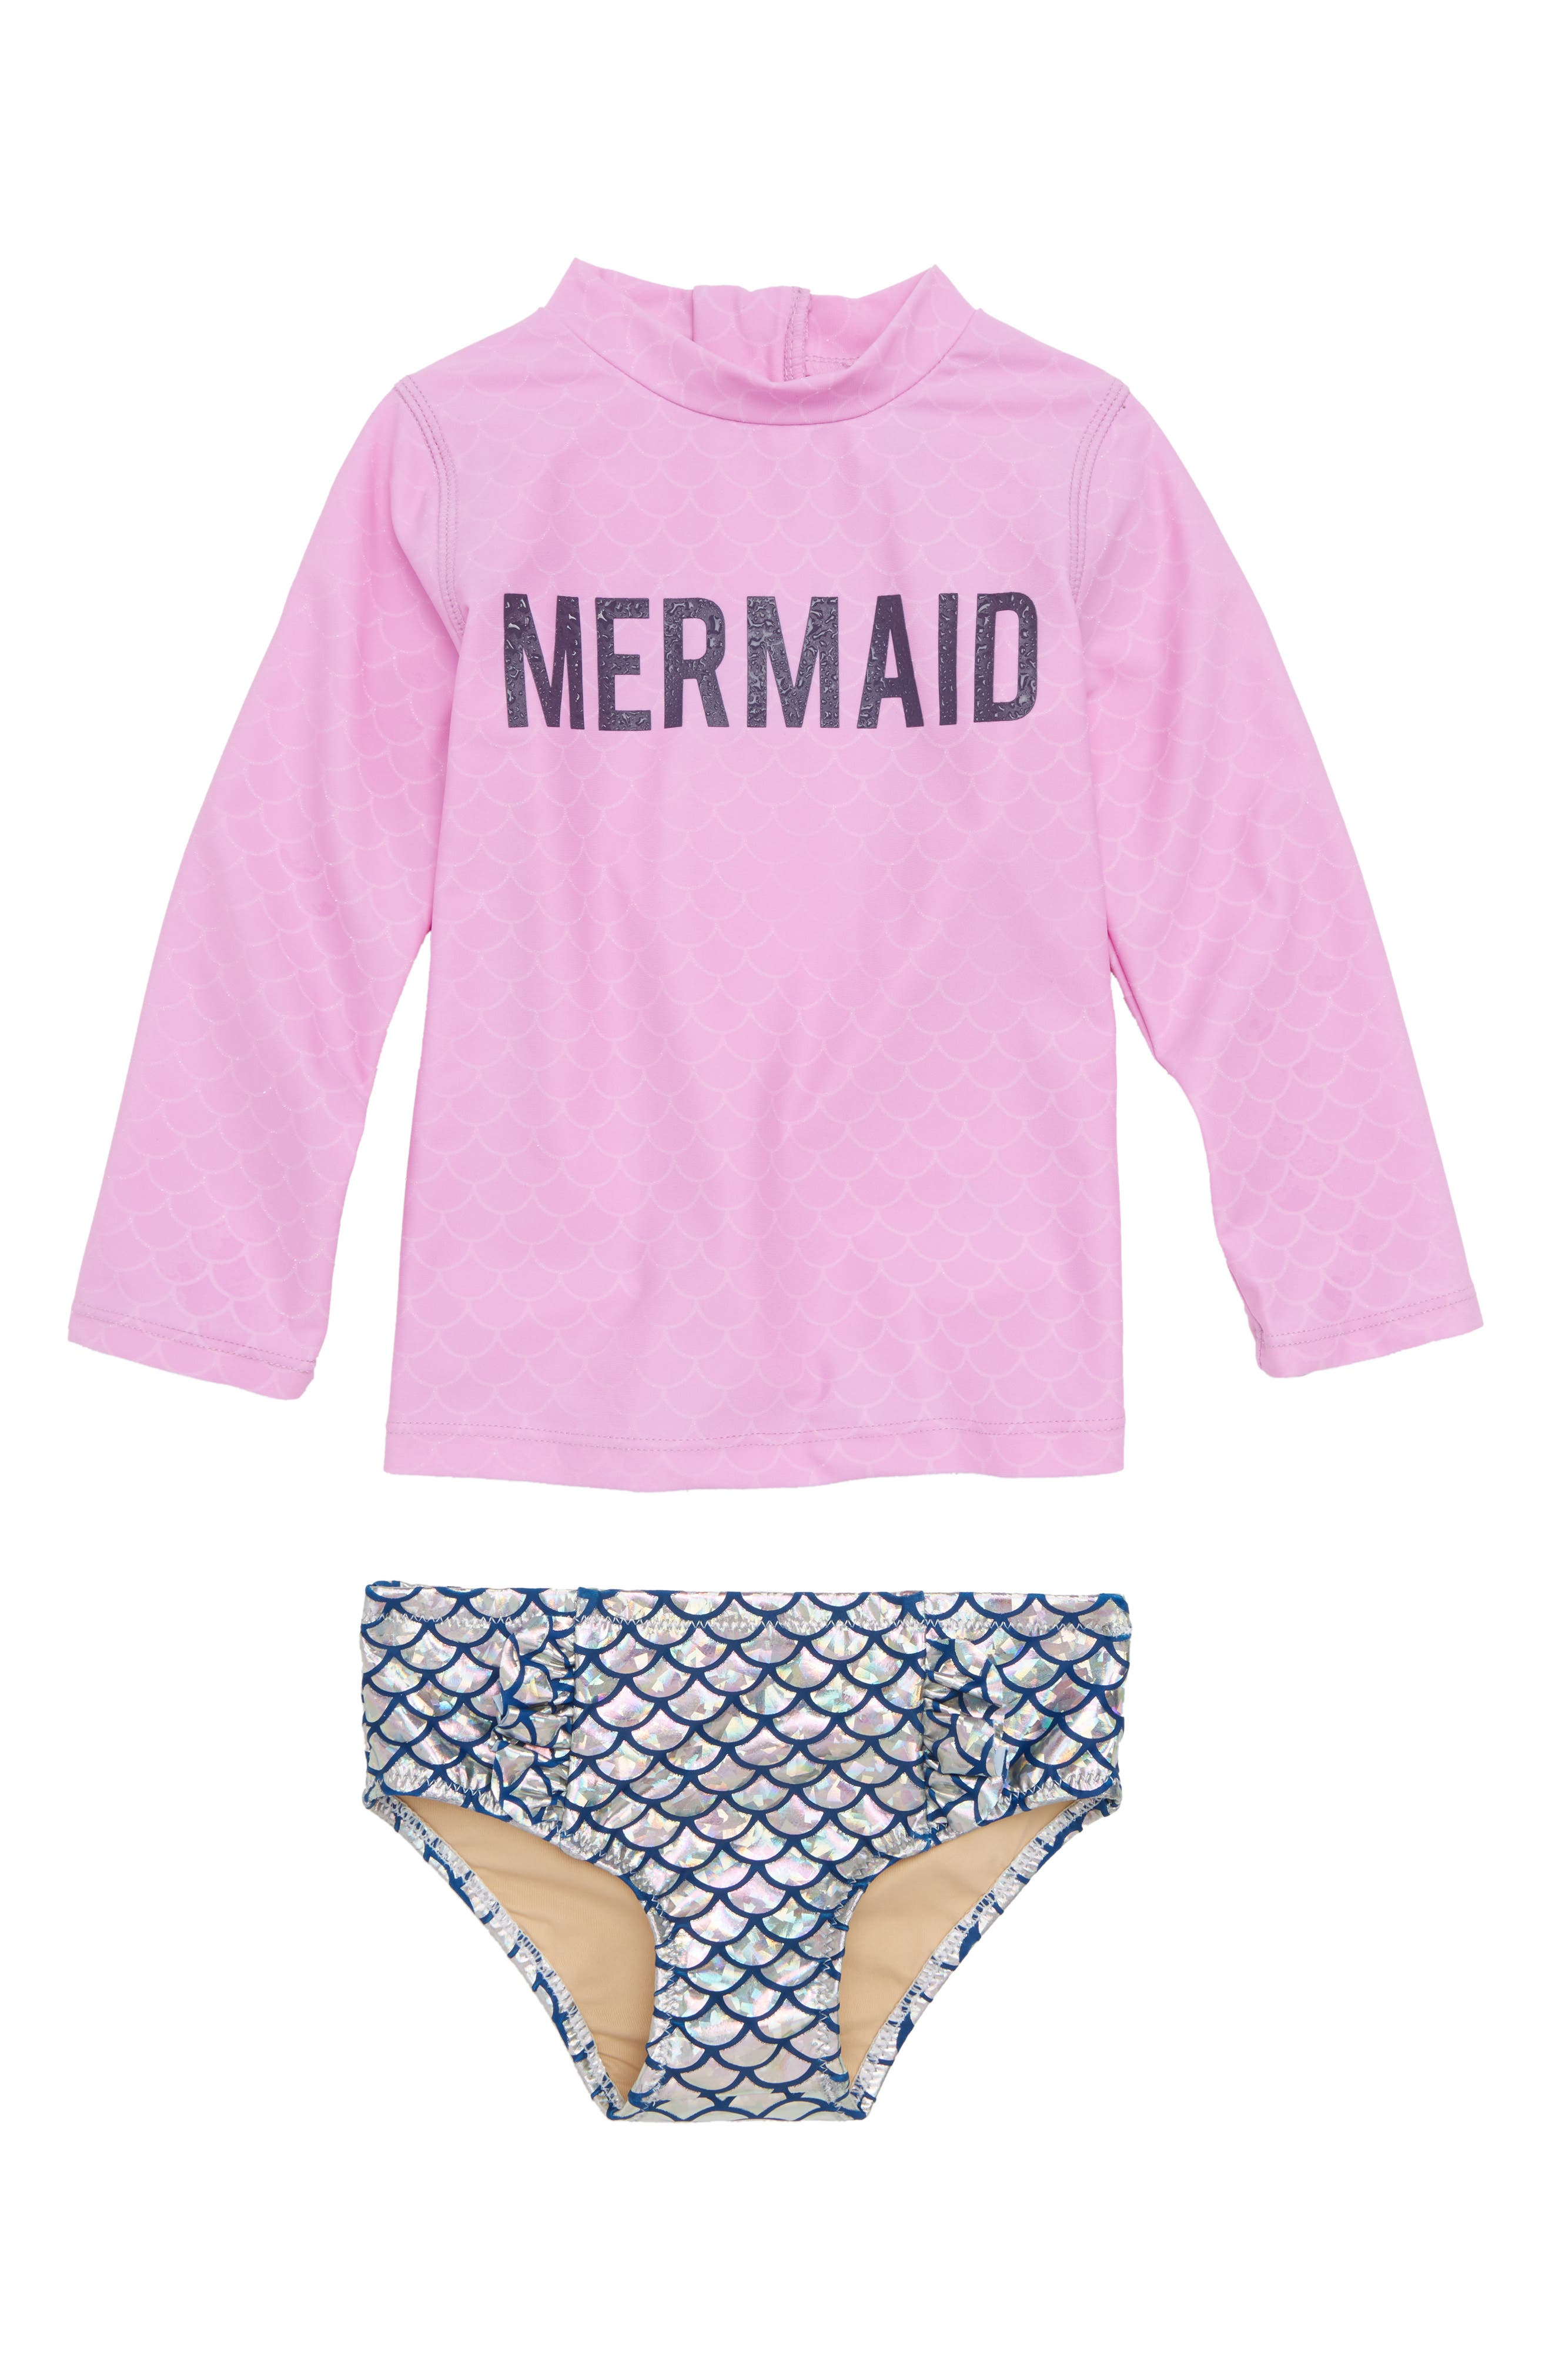 Mermaid Magic Rashguard Two-Piece Swimsuit,                             Alternate thumbnail 3, color,                             Purple